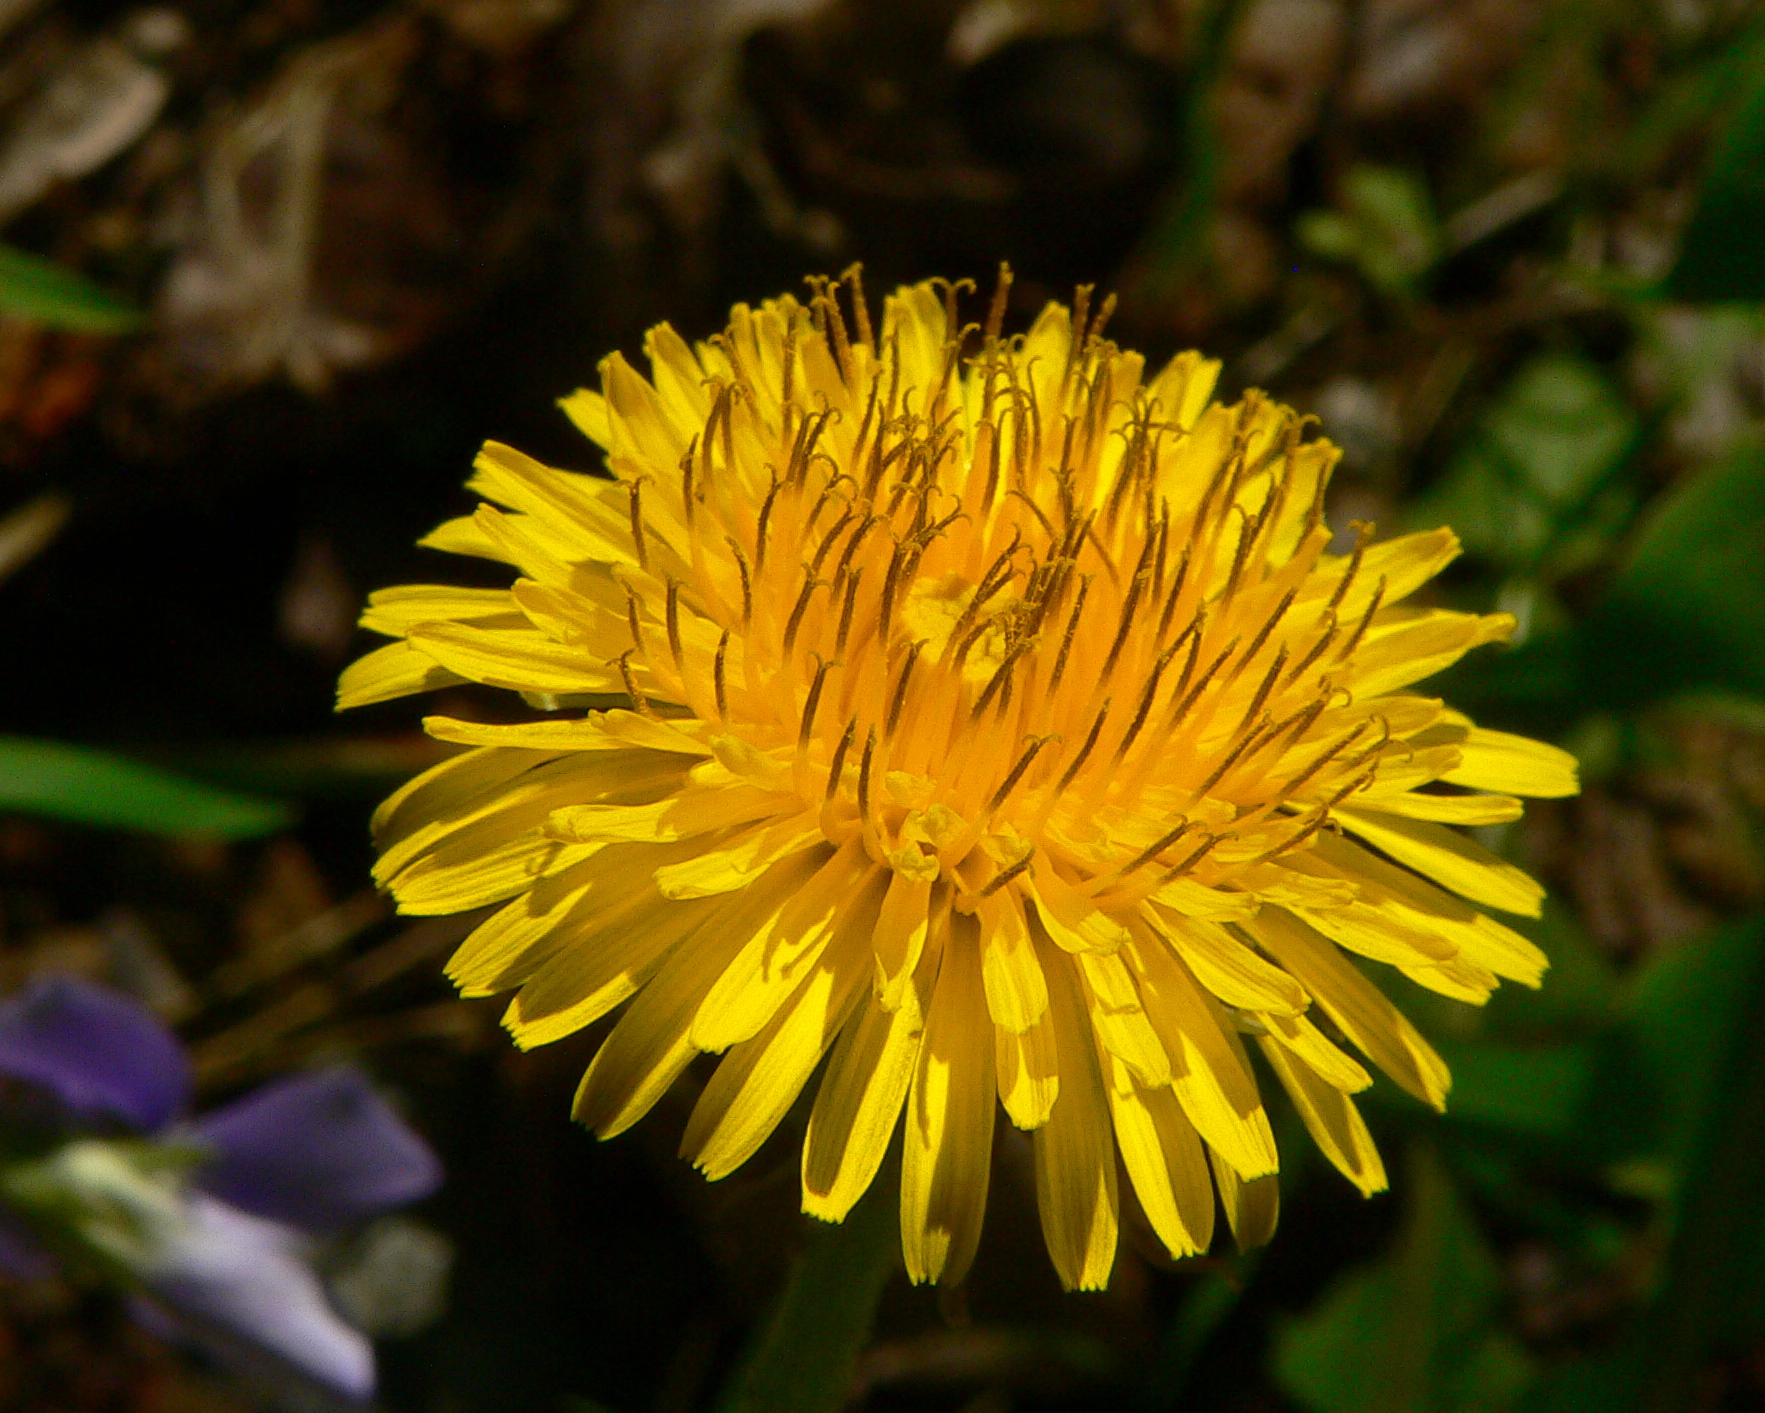 Dandelion - Herbs for weight loss